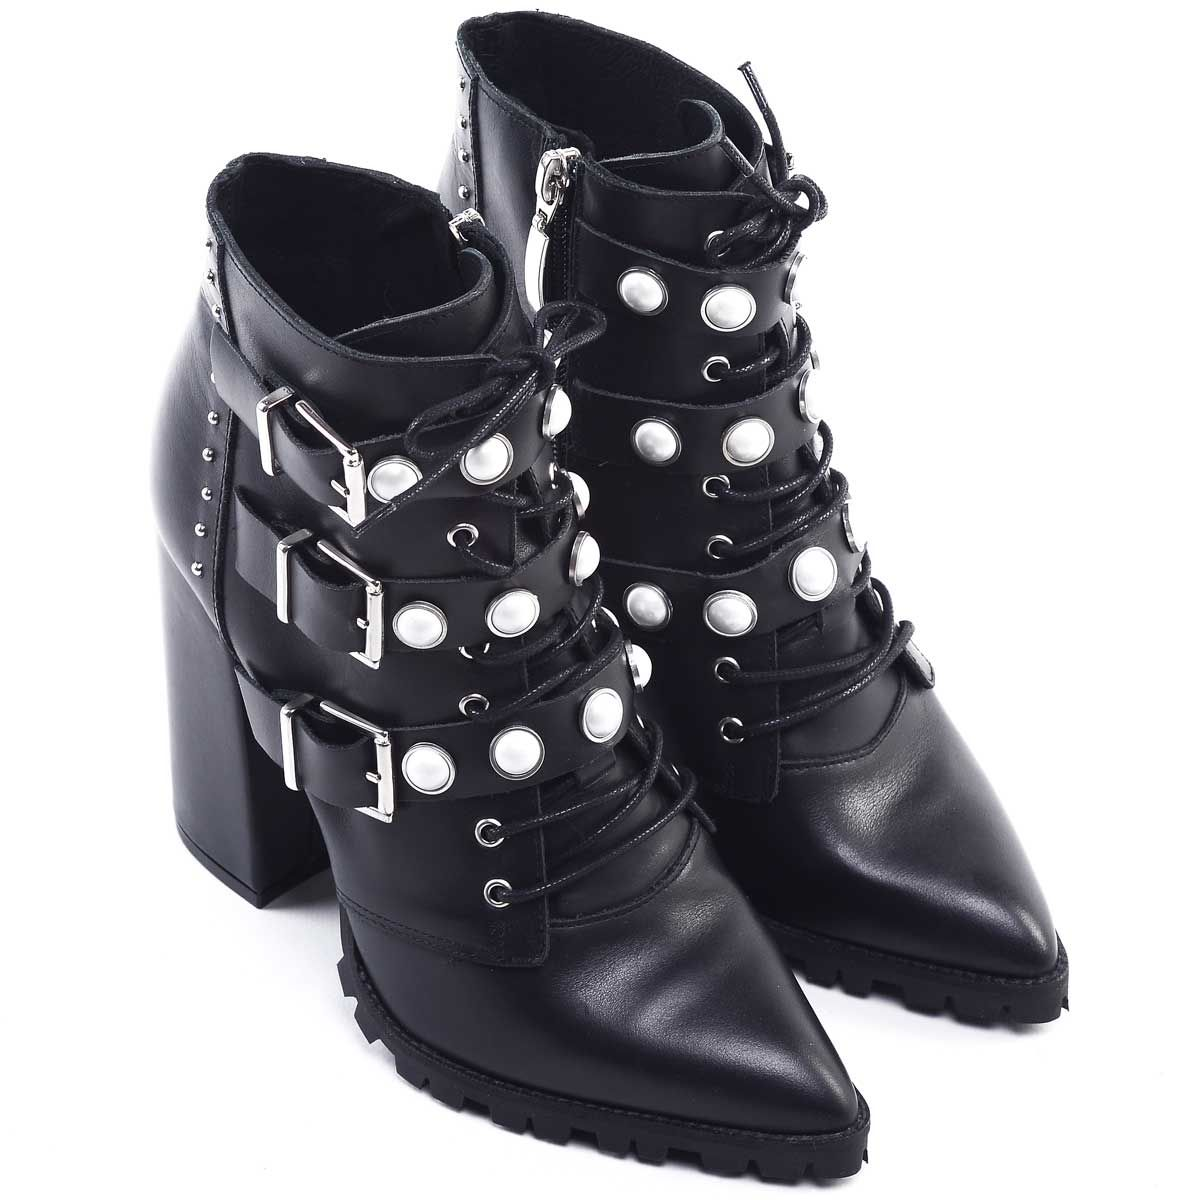 Montevita Buckle Lace Up Ankle Boot in Black